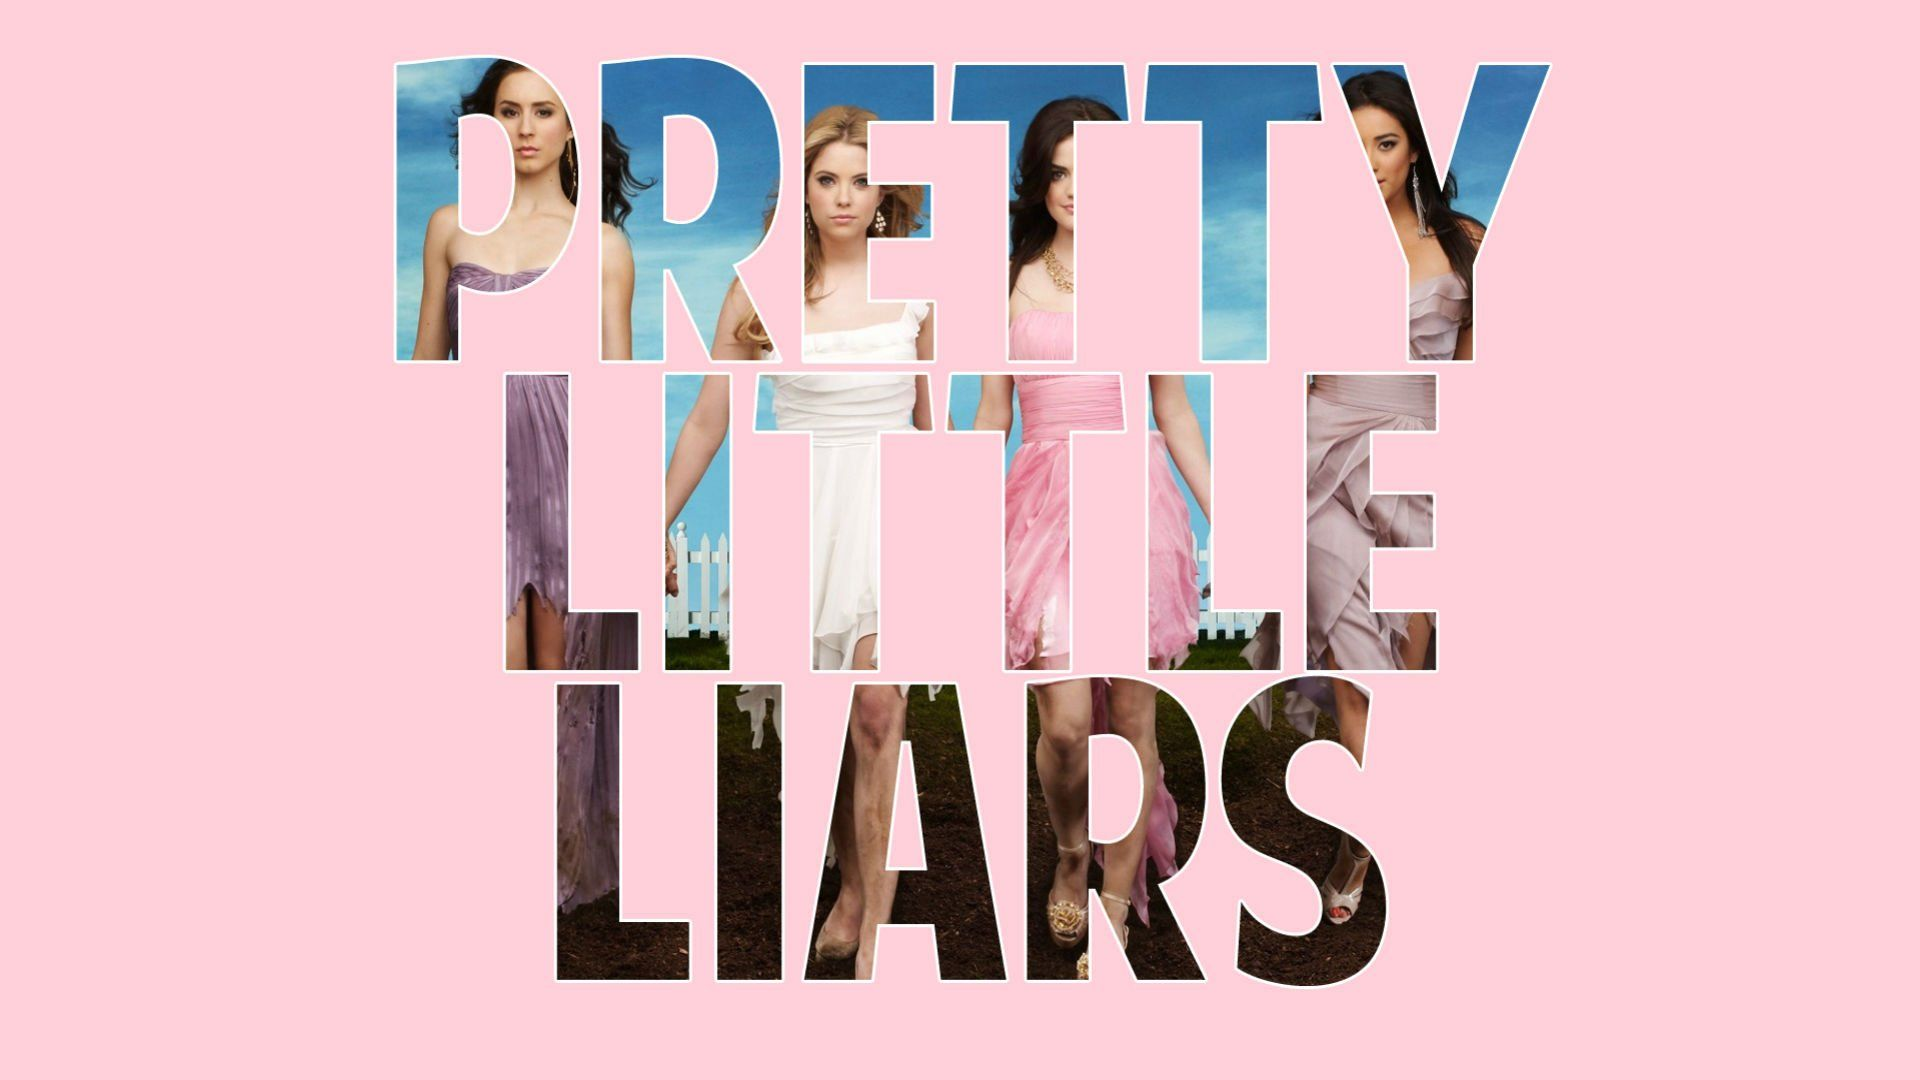 Pretty Little Liars Images HD. | Pretty Little Liars | Pinterest ...